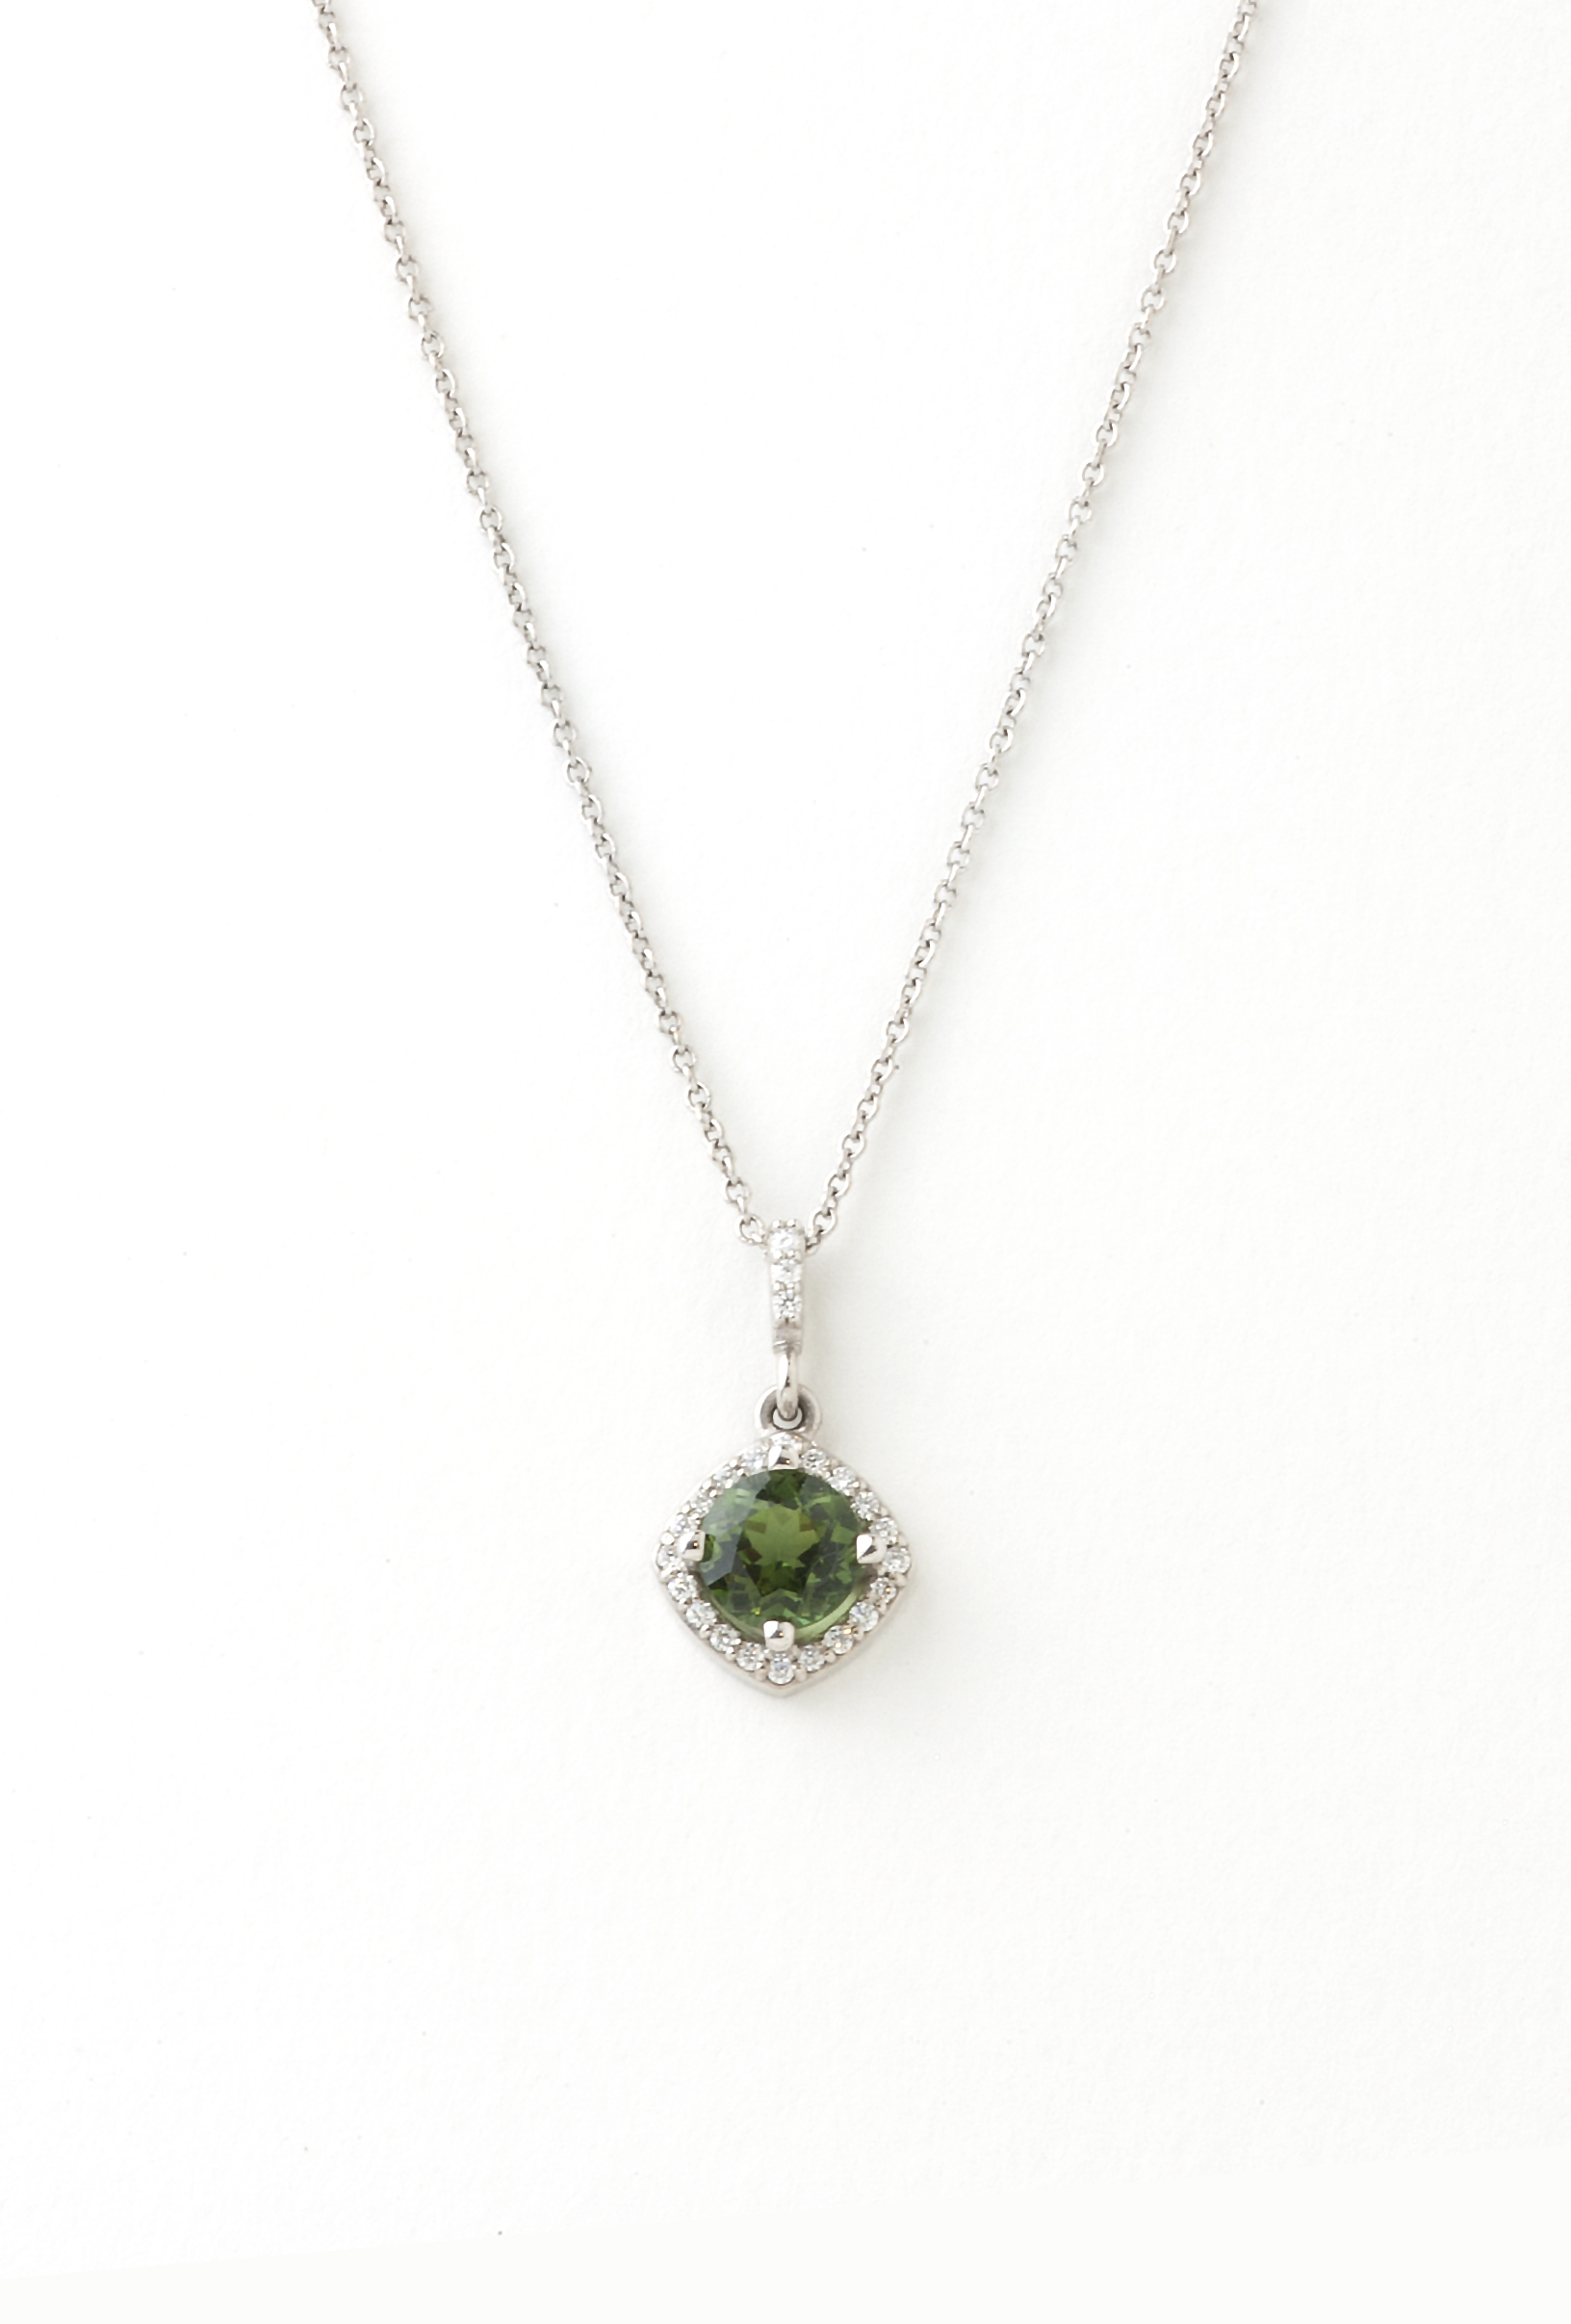 Green tourmaline and diamond pendent